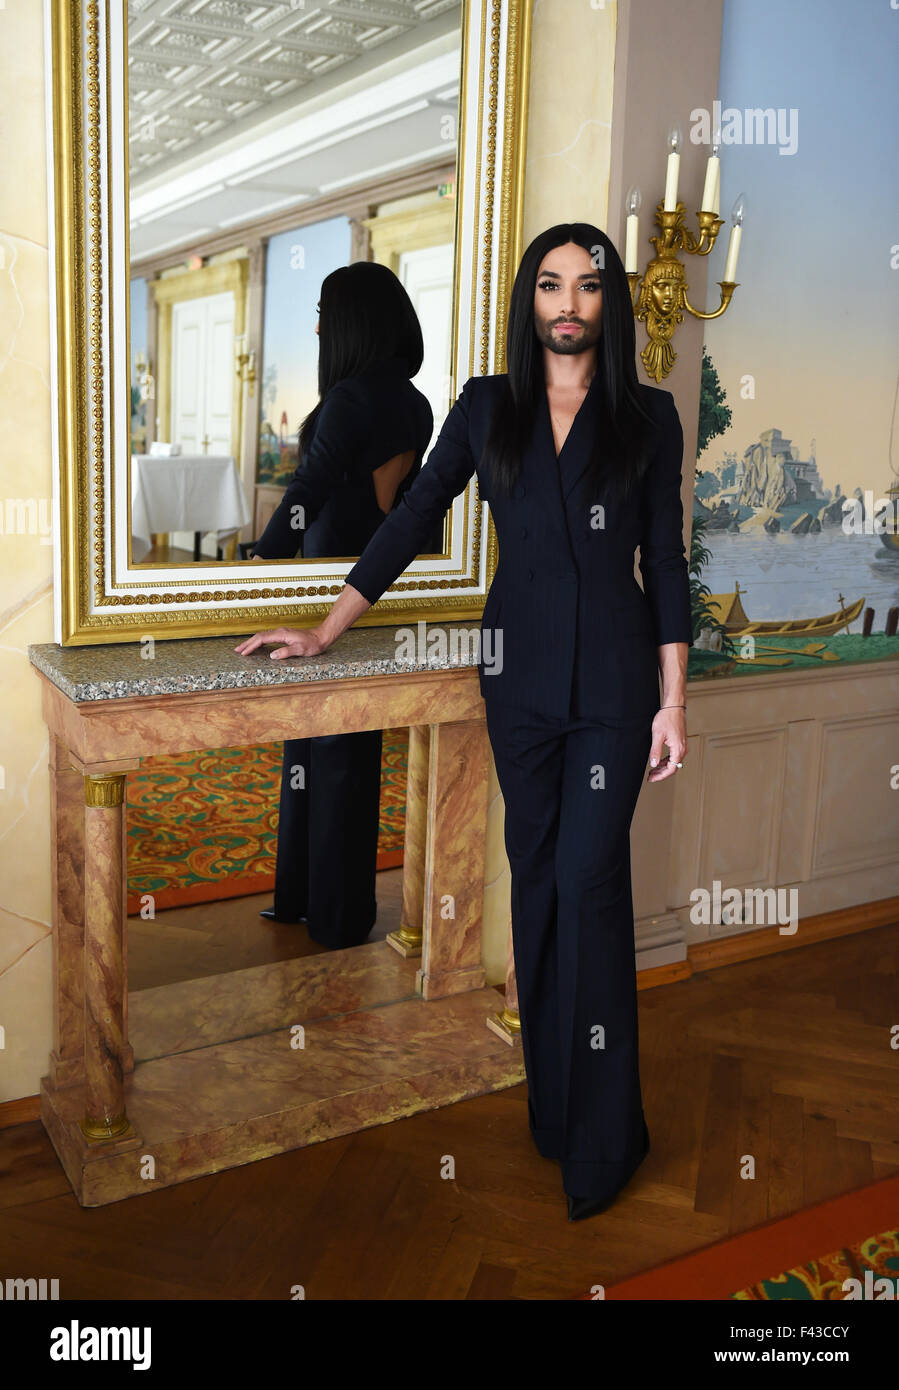 Exclusive: Austrian singer Conchita Wurst poses during a photo shooting during the Frankfurt Book Fair 2015. Conchita - Stock Image